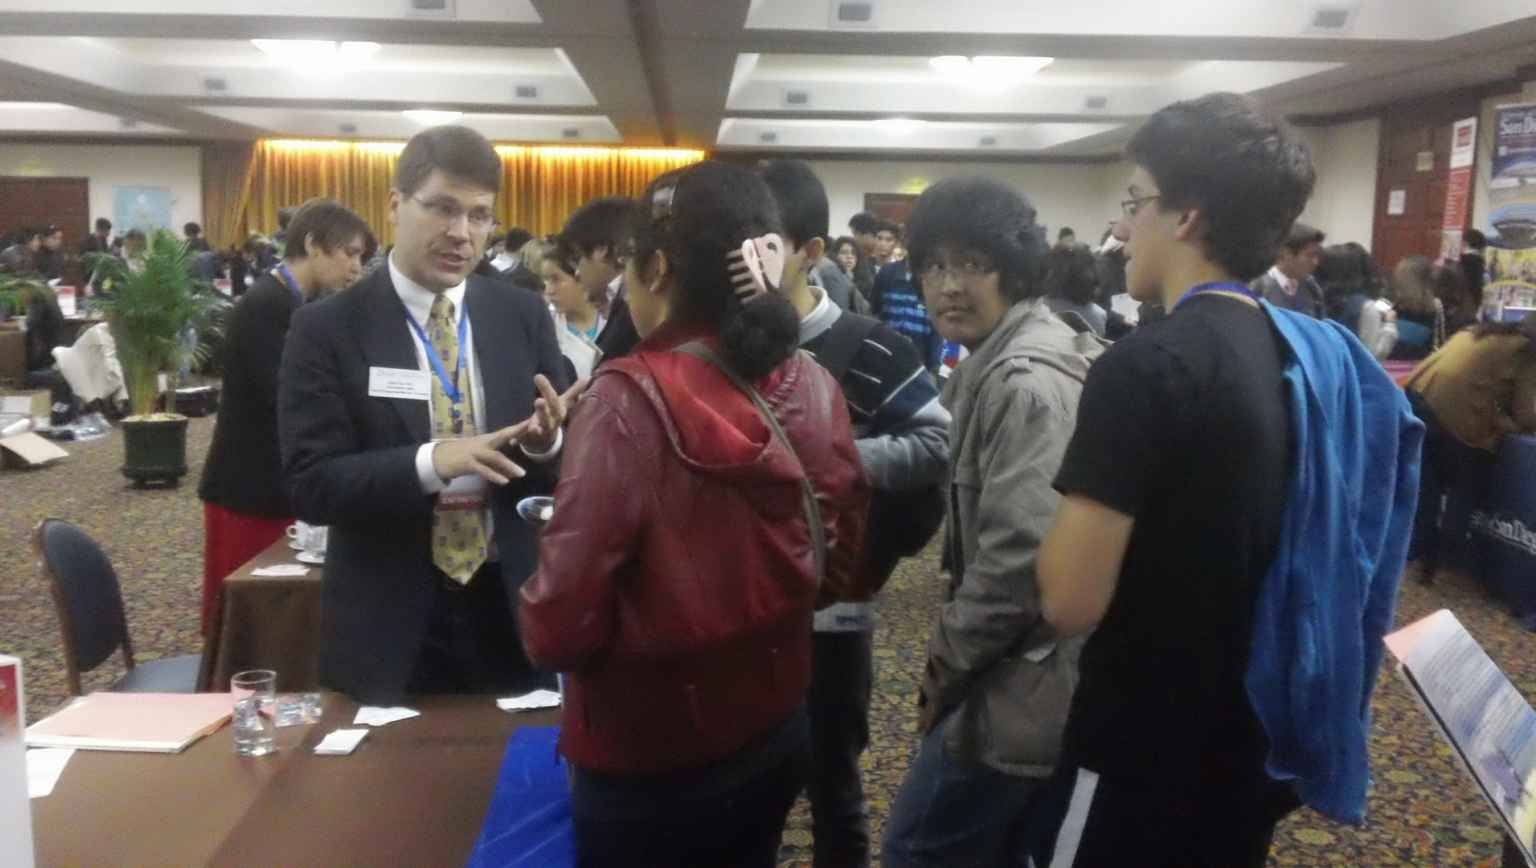 International students at US college fairs meeting with advisors and representatives